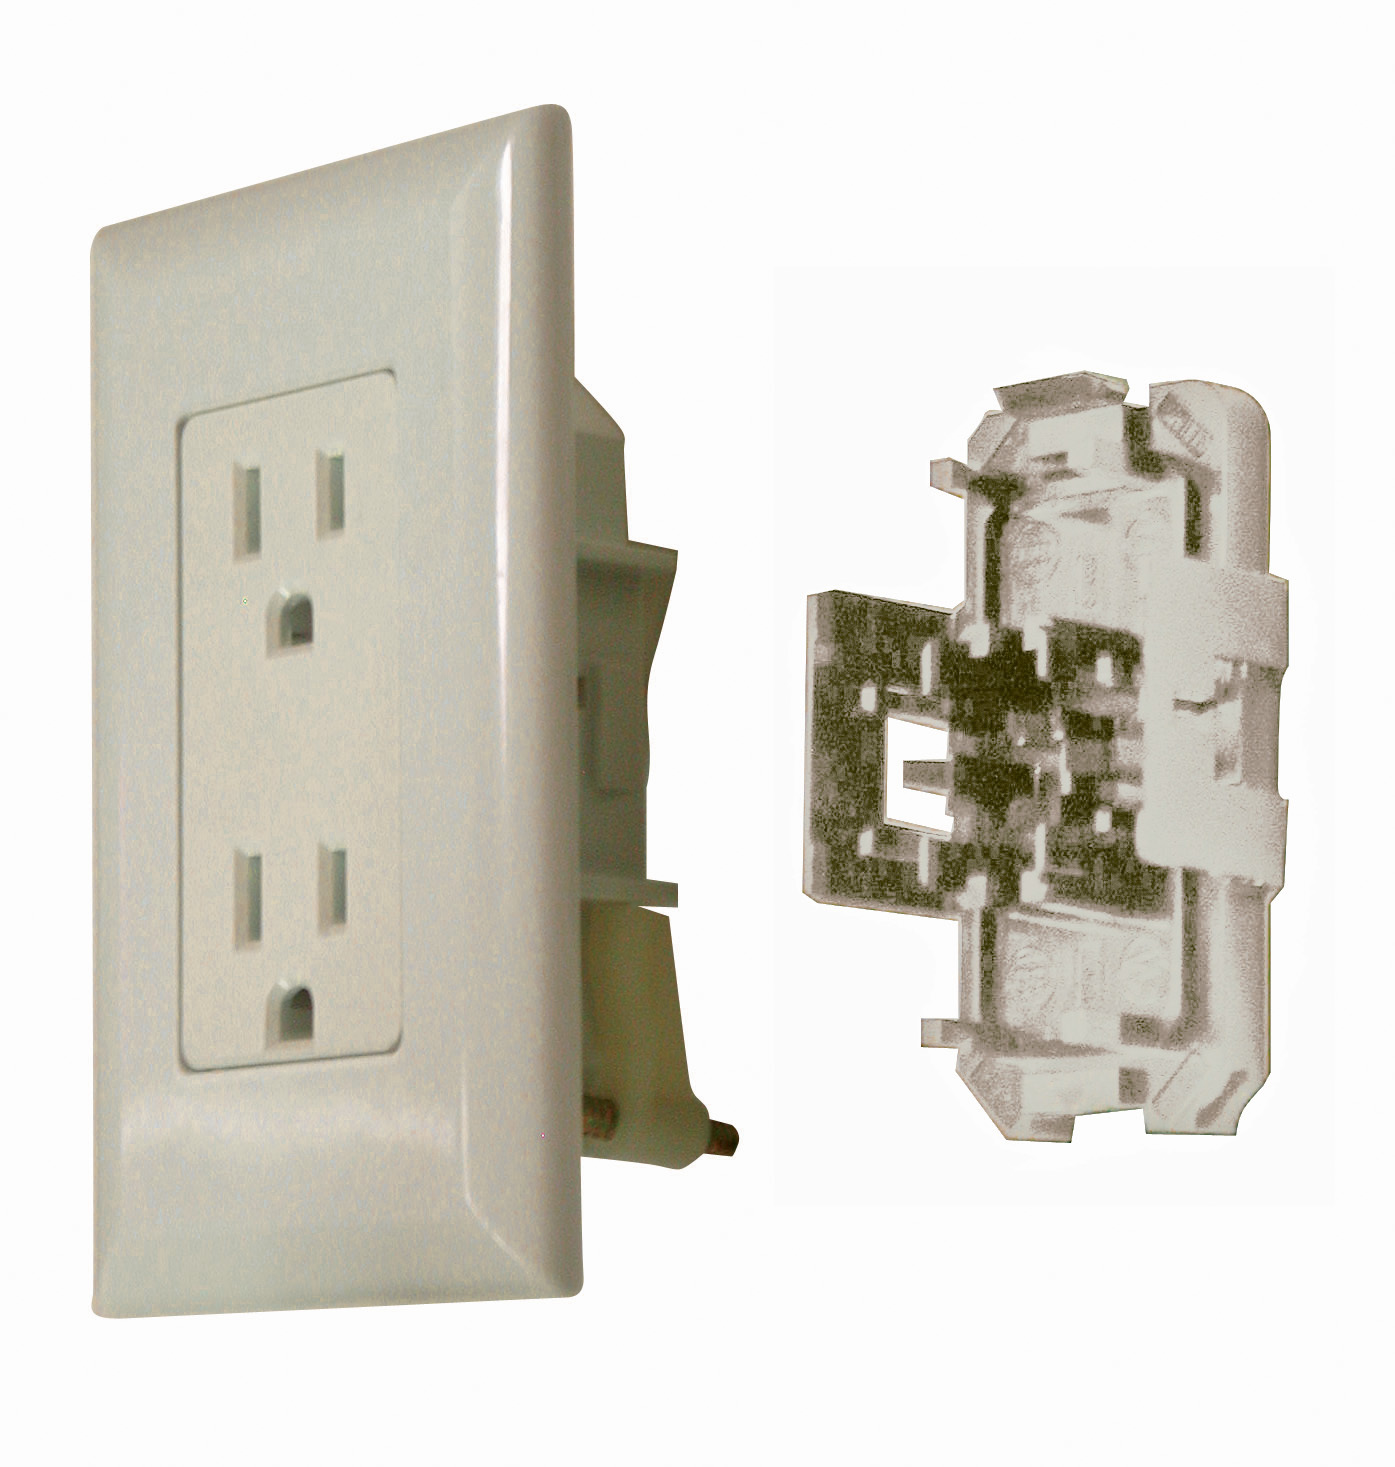 15 Amp Decor Receptacle With Cover - Ivory WDR15IV